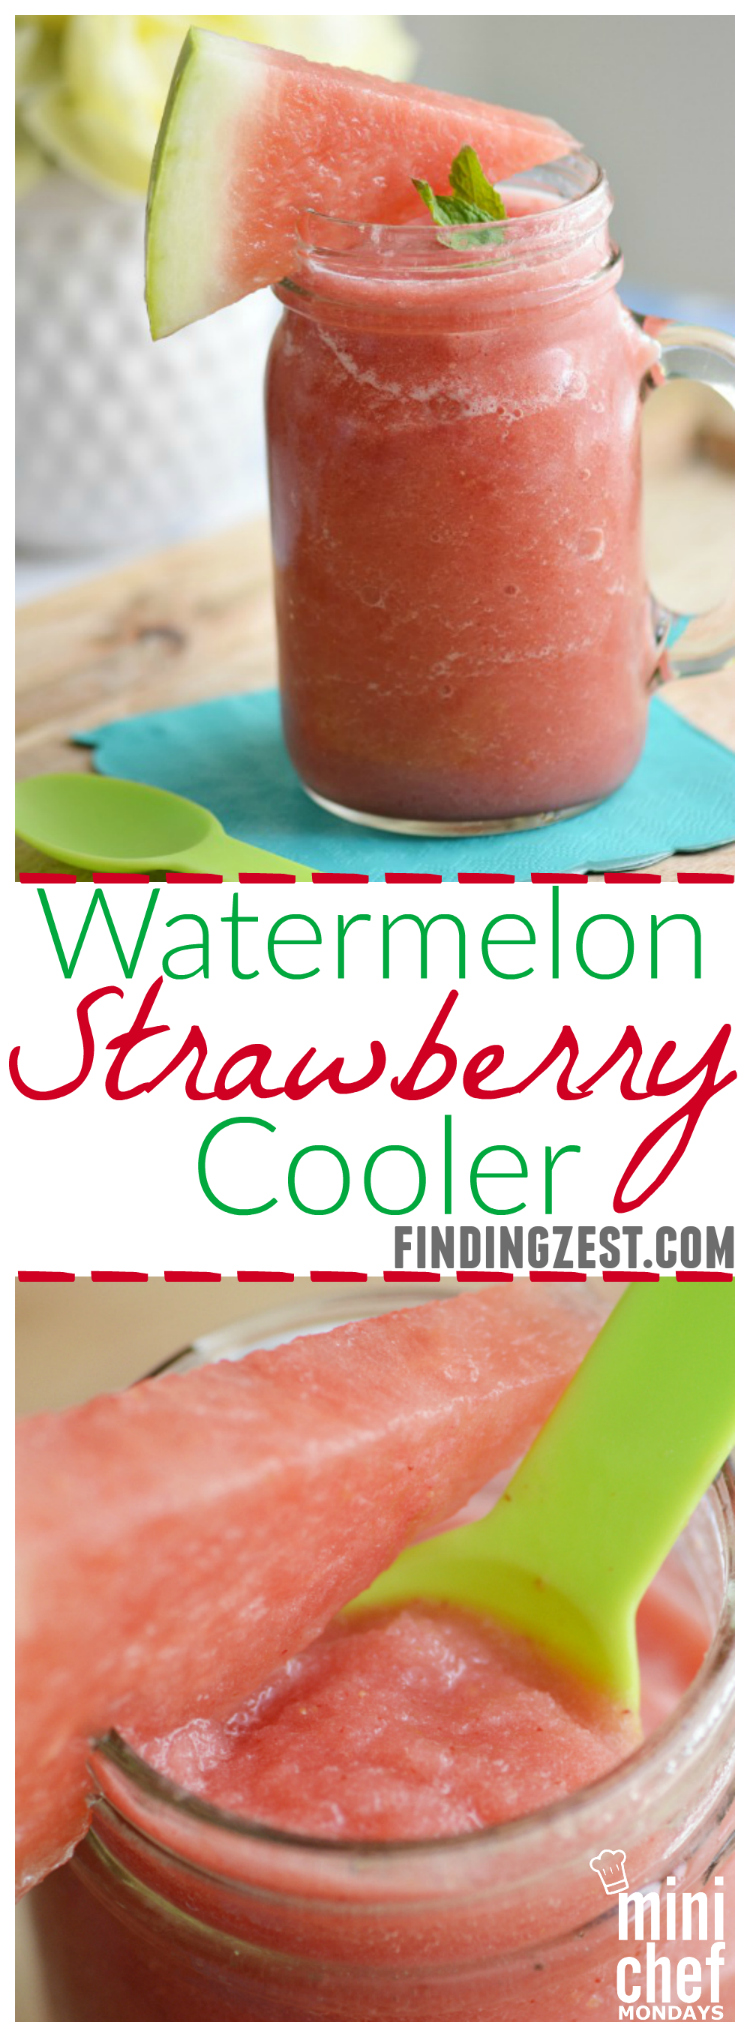 Watermelon Strawberry Cooler